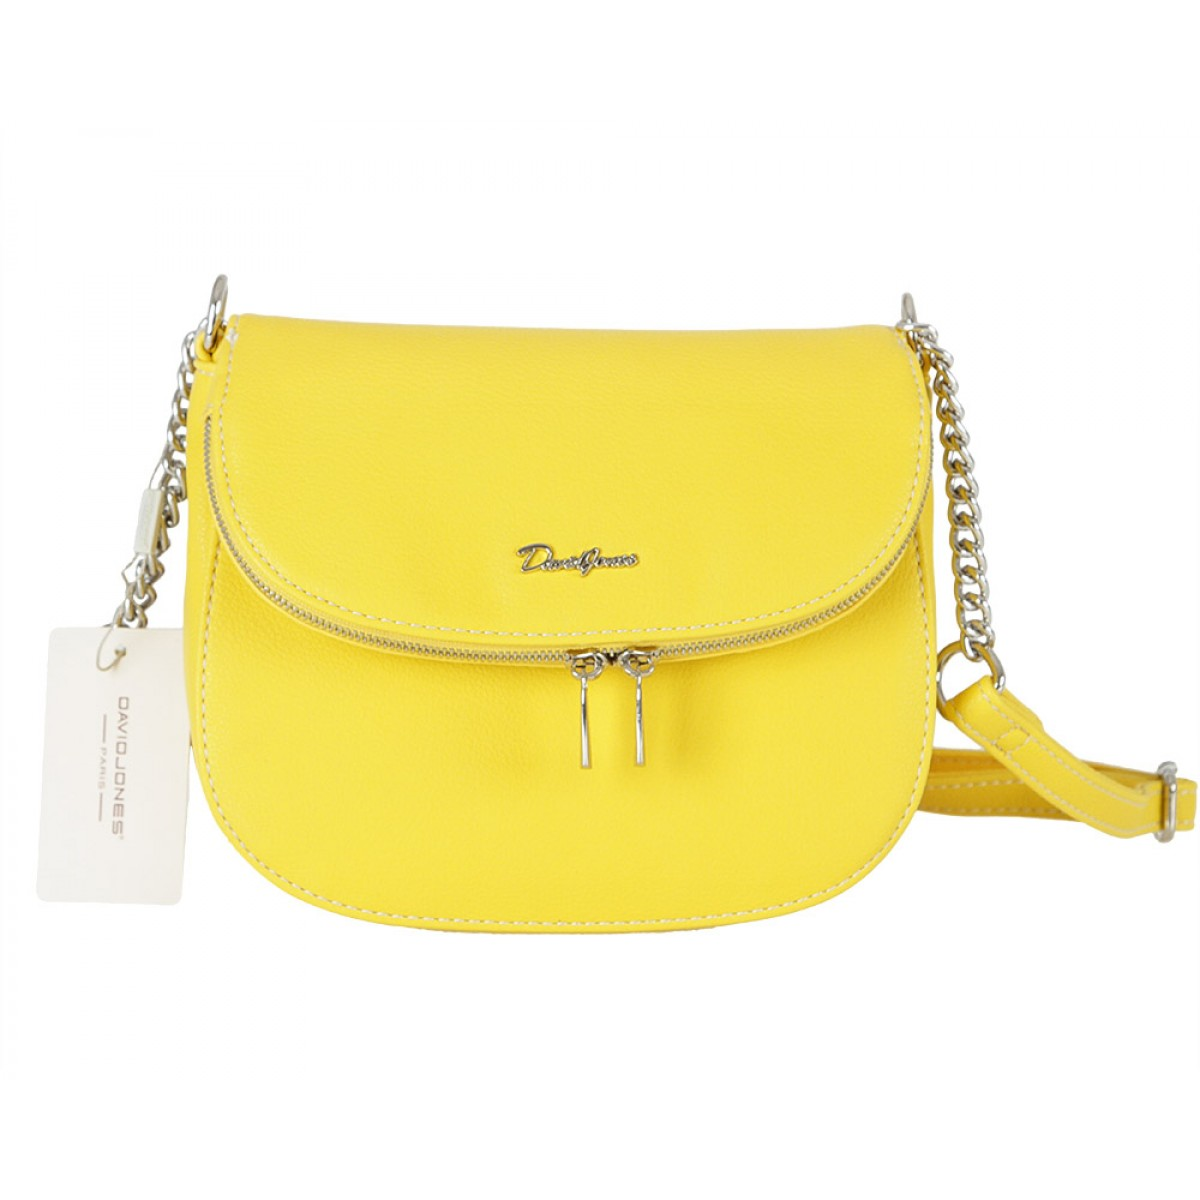 Жіноча сумка David Jones 6200-1A FEINT YELLOW